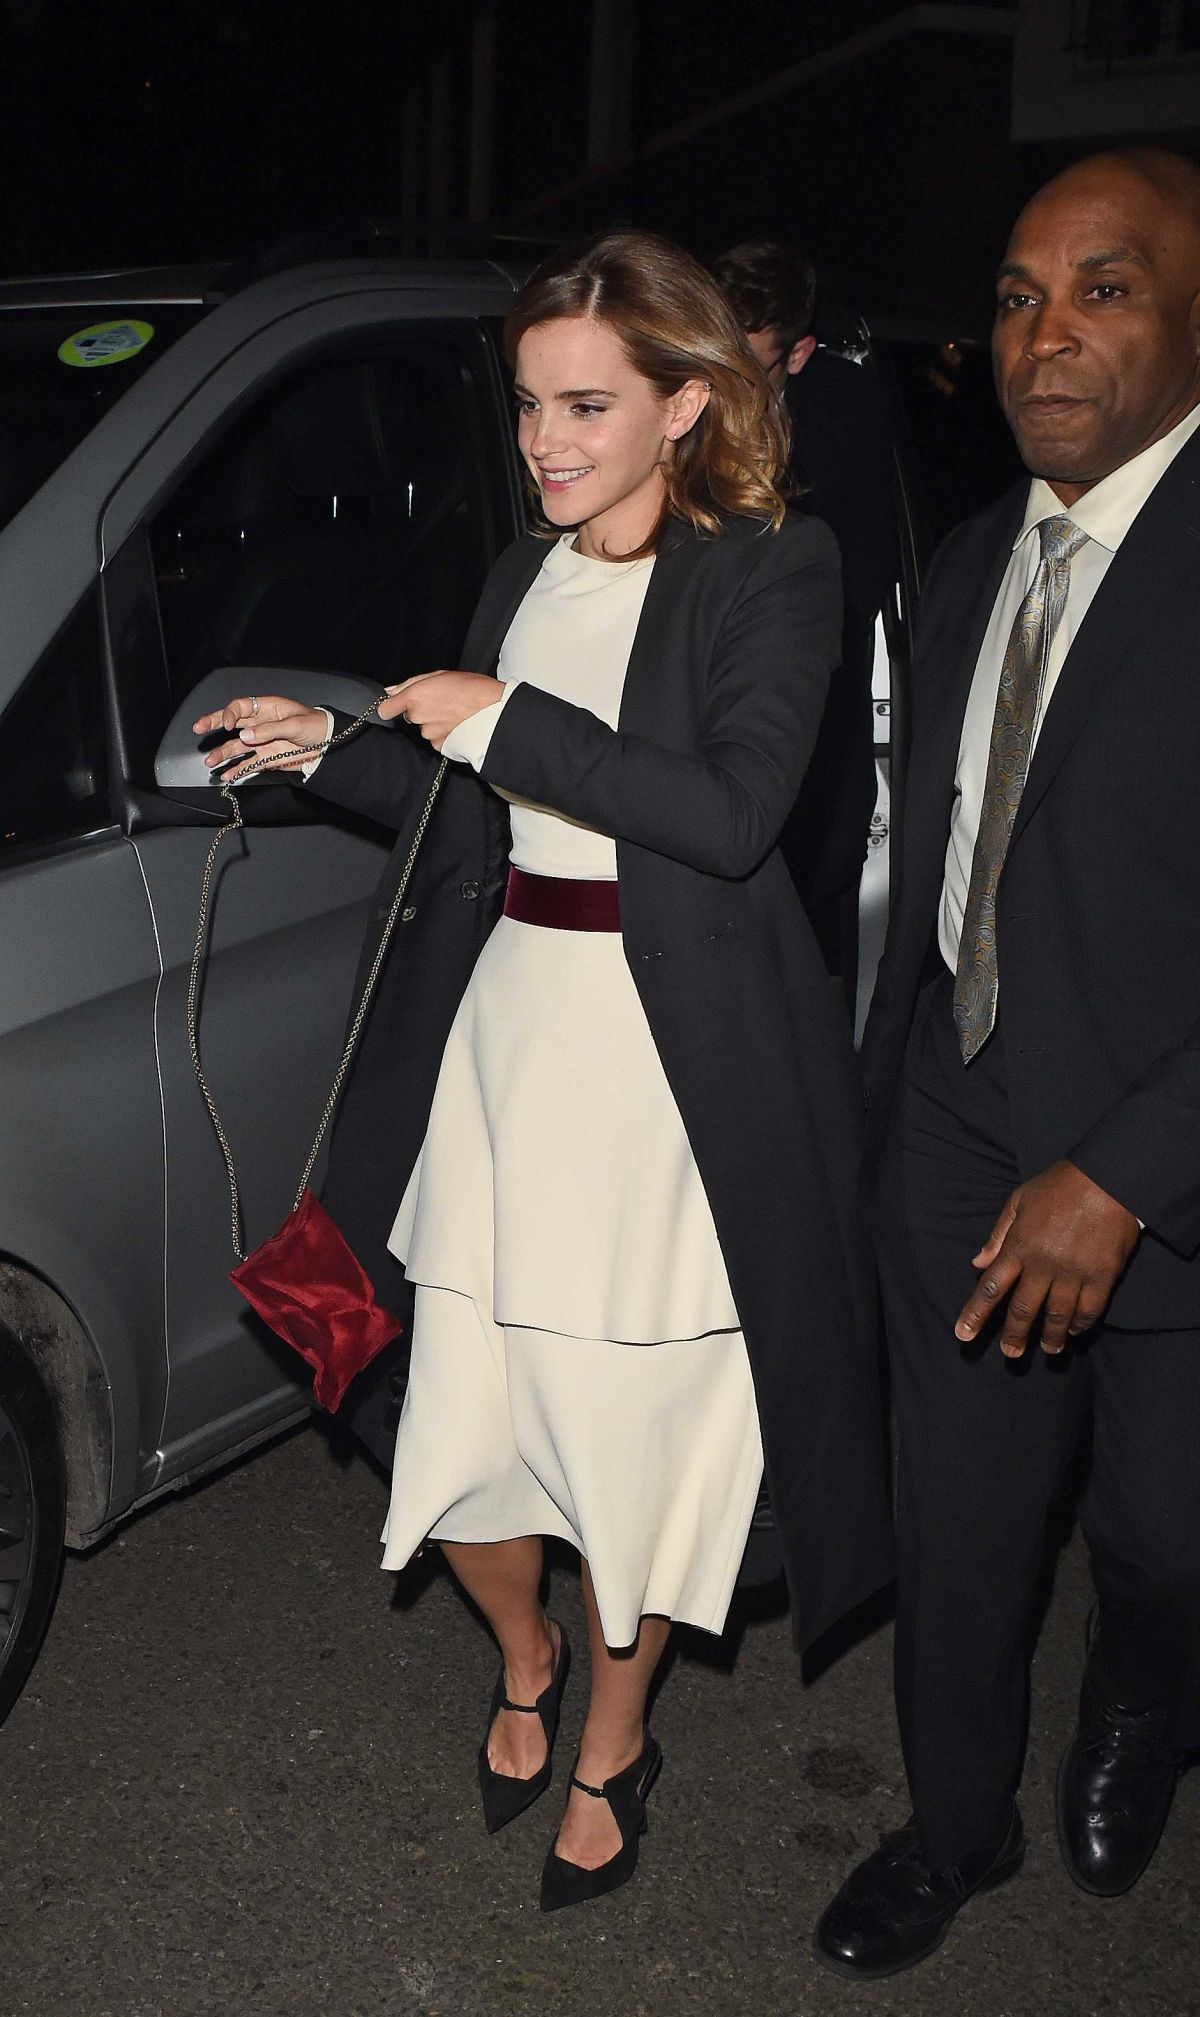 EMMA WATSON Arrives at Beauty and the Beast Premiere After Party in London 02/23/2017